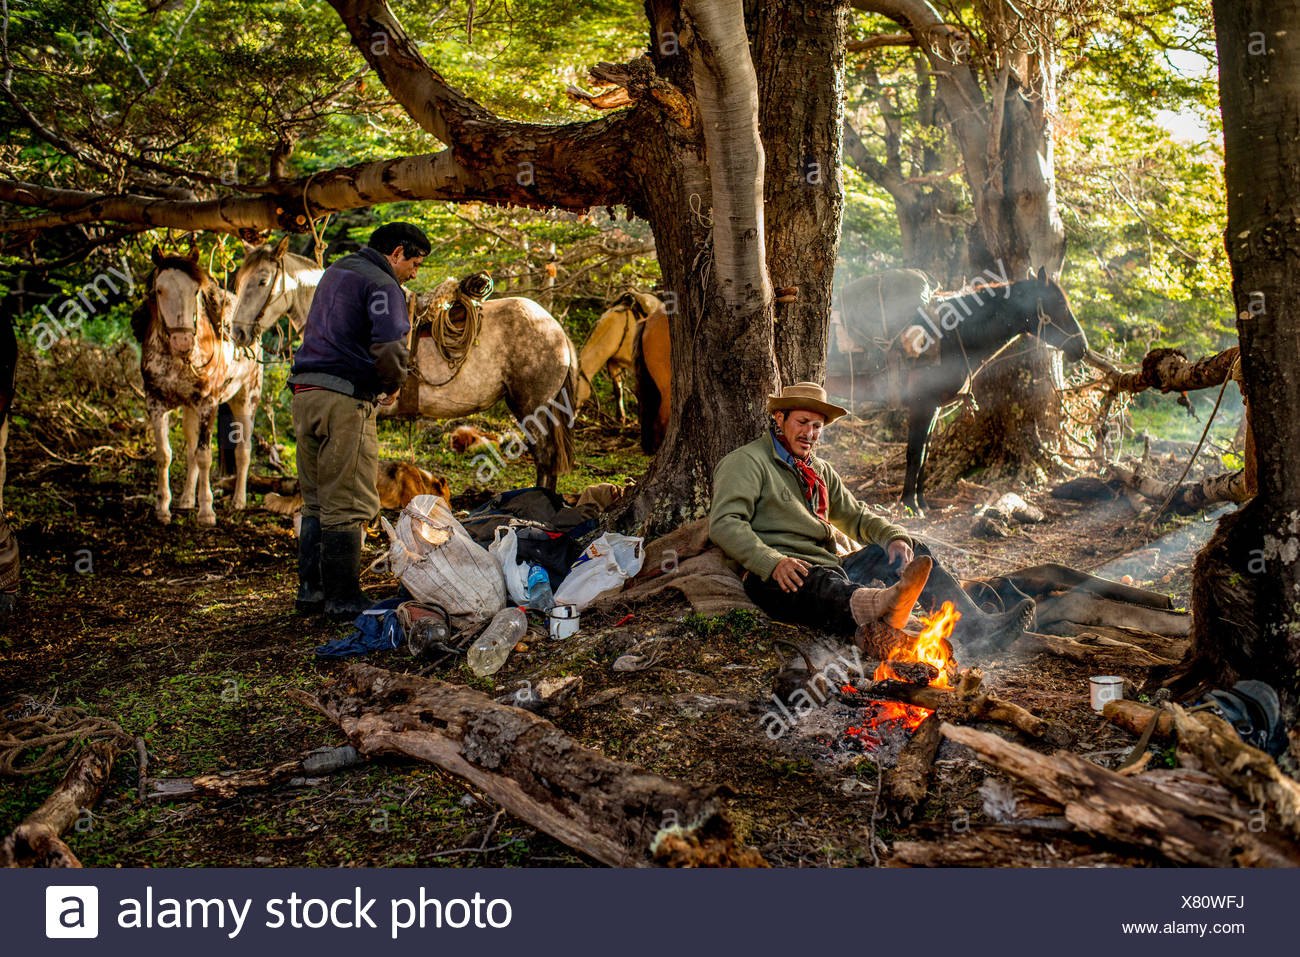 Bagualeros, cowboys who capture feral livestock, eat breakfast and load horses on a trip. - Stock Image